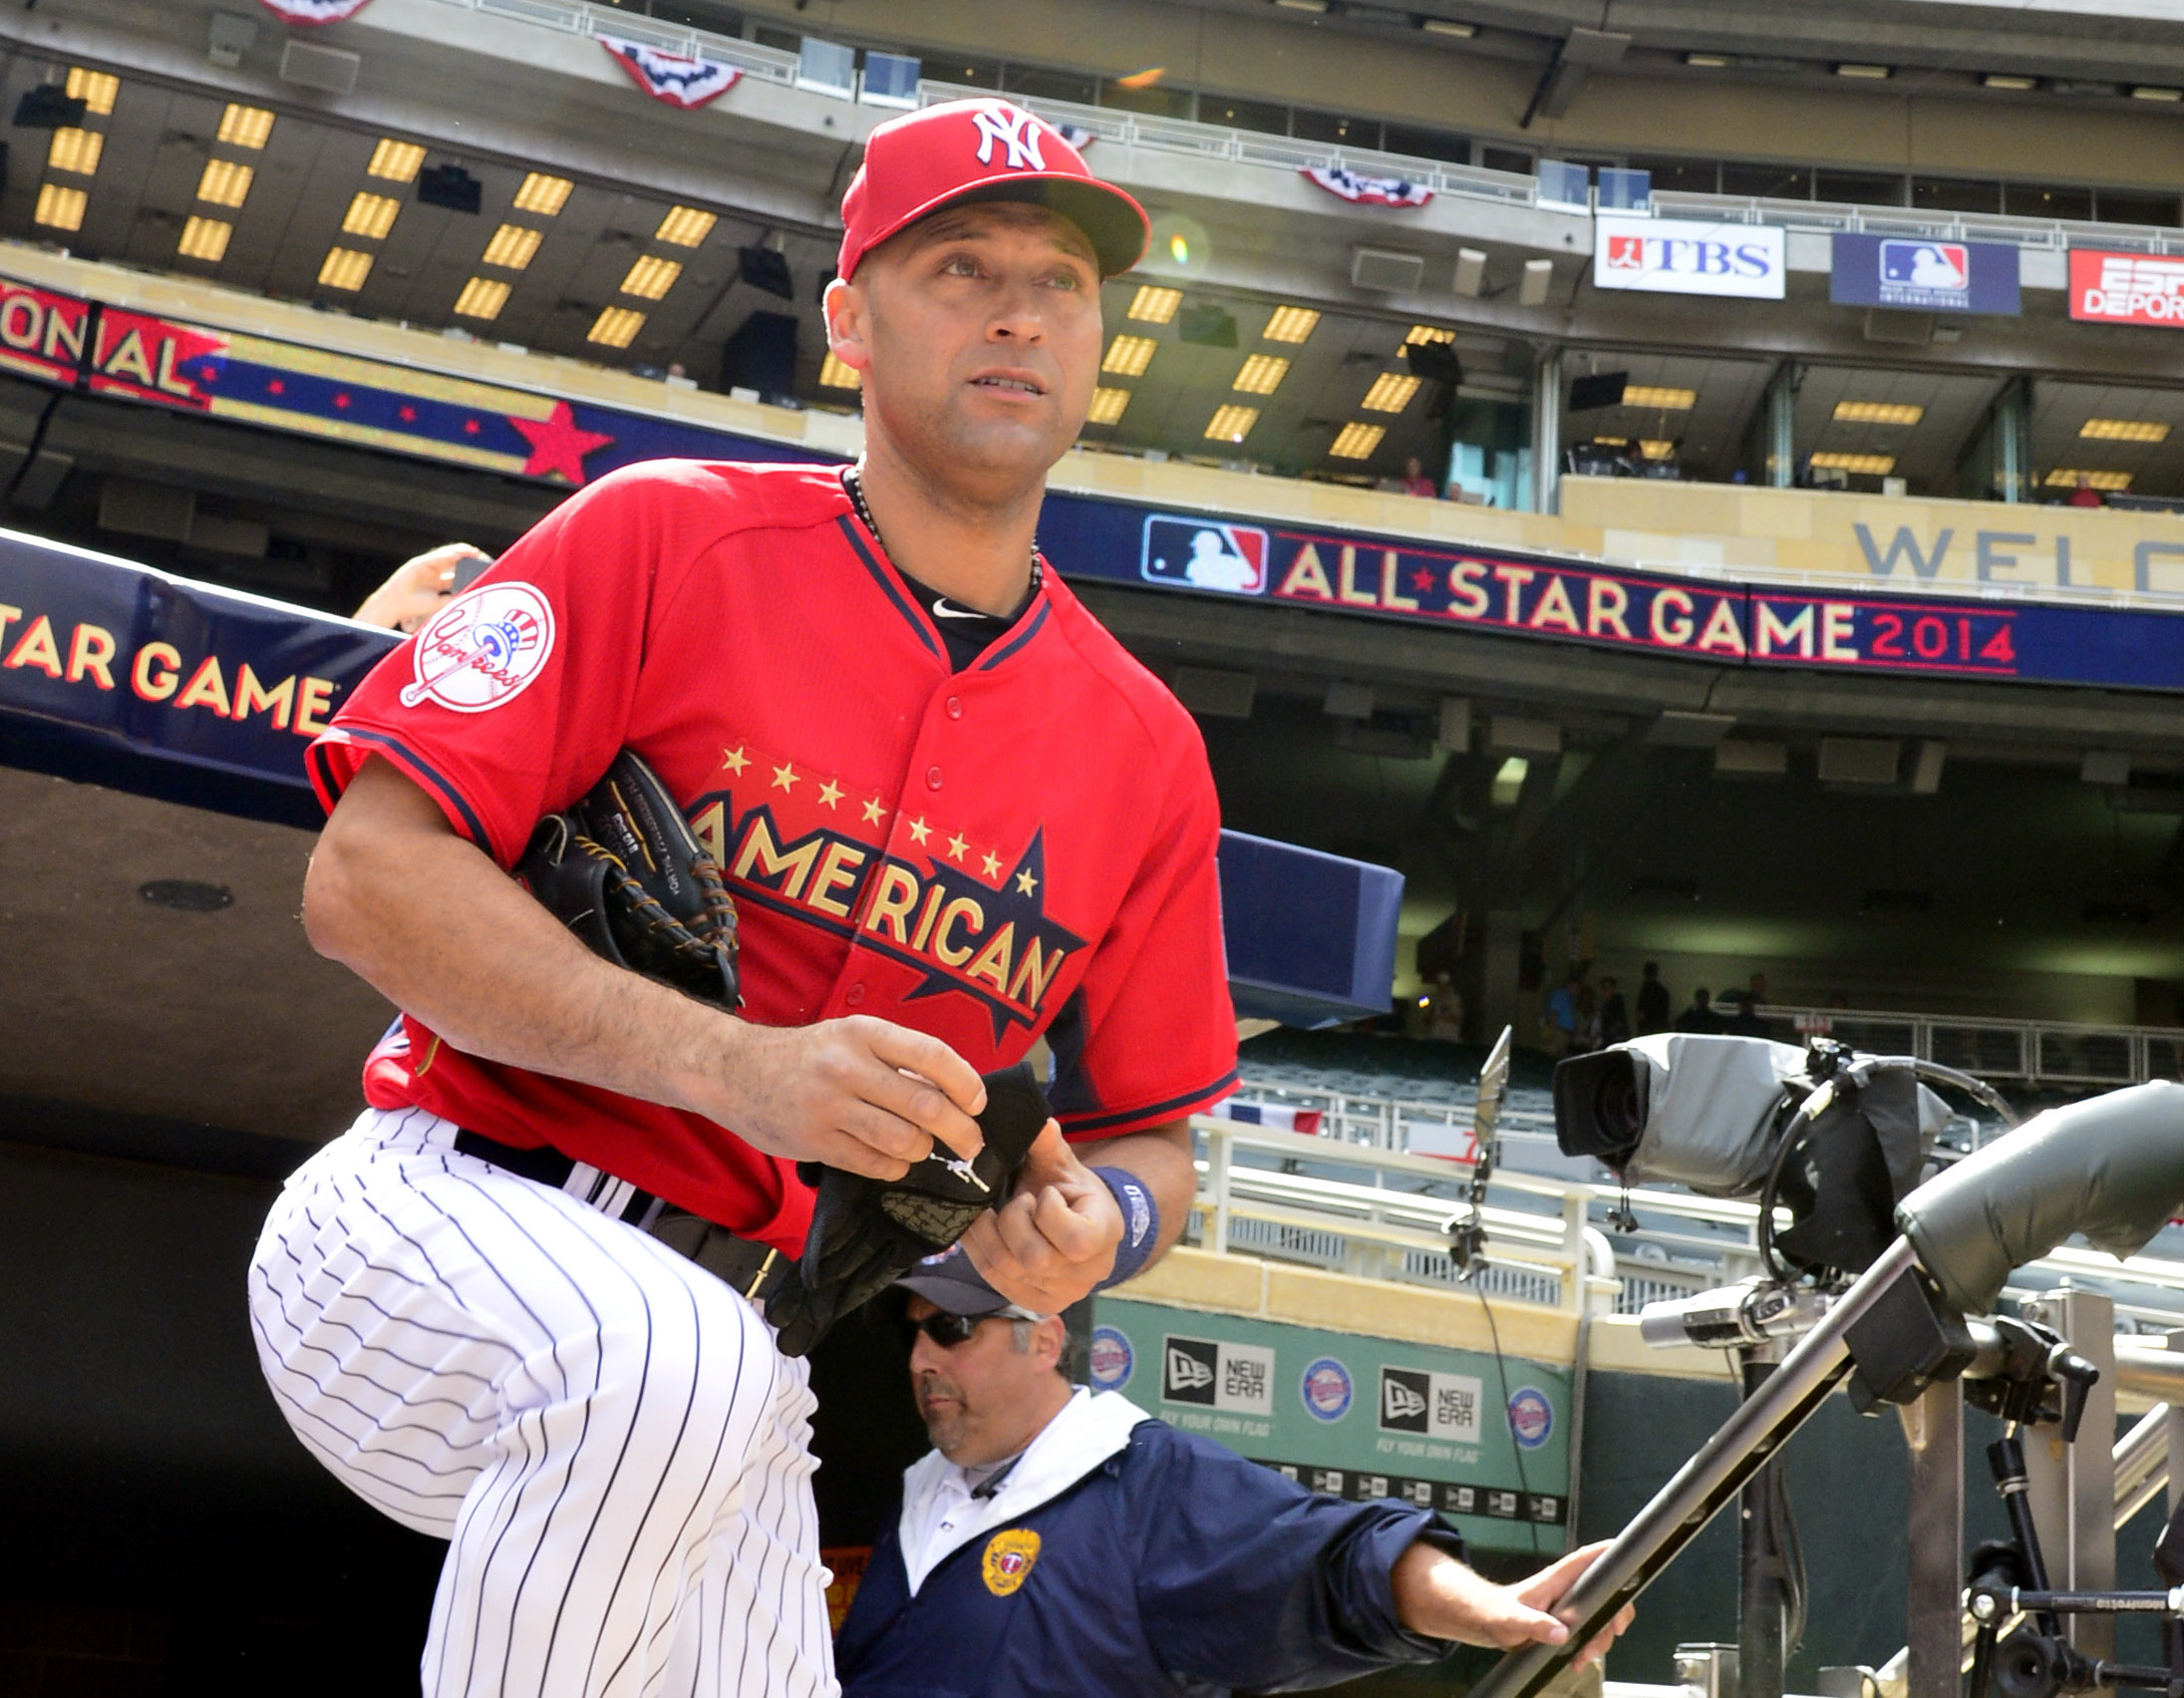 Derek Jeter will bat leadoff for the AL in his 15th All-Star Game. (Scott Rovak, USA TODAY Sports)